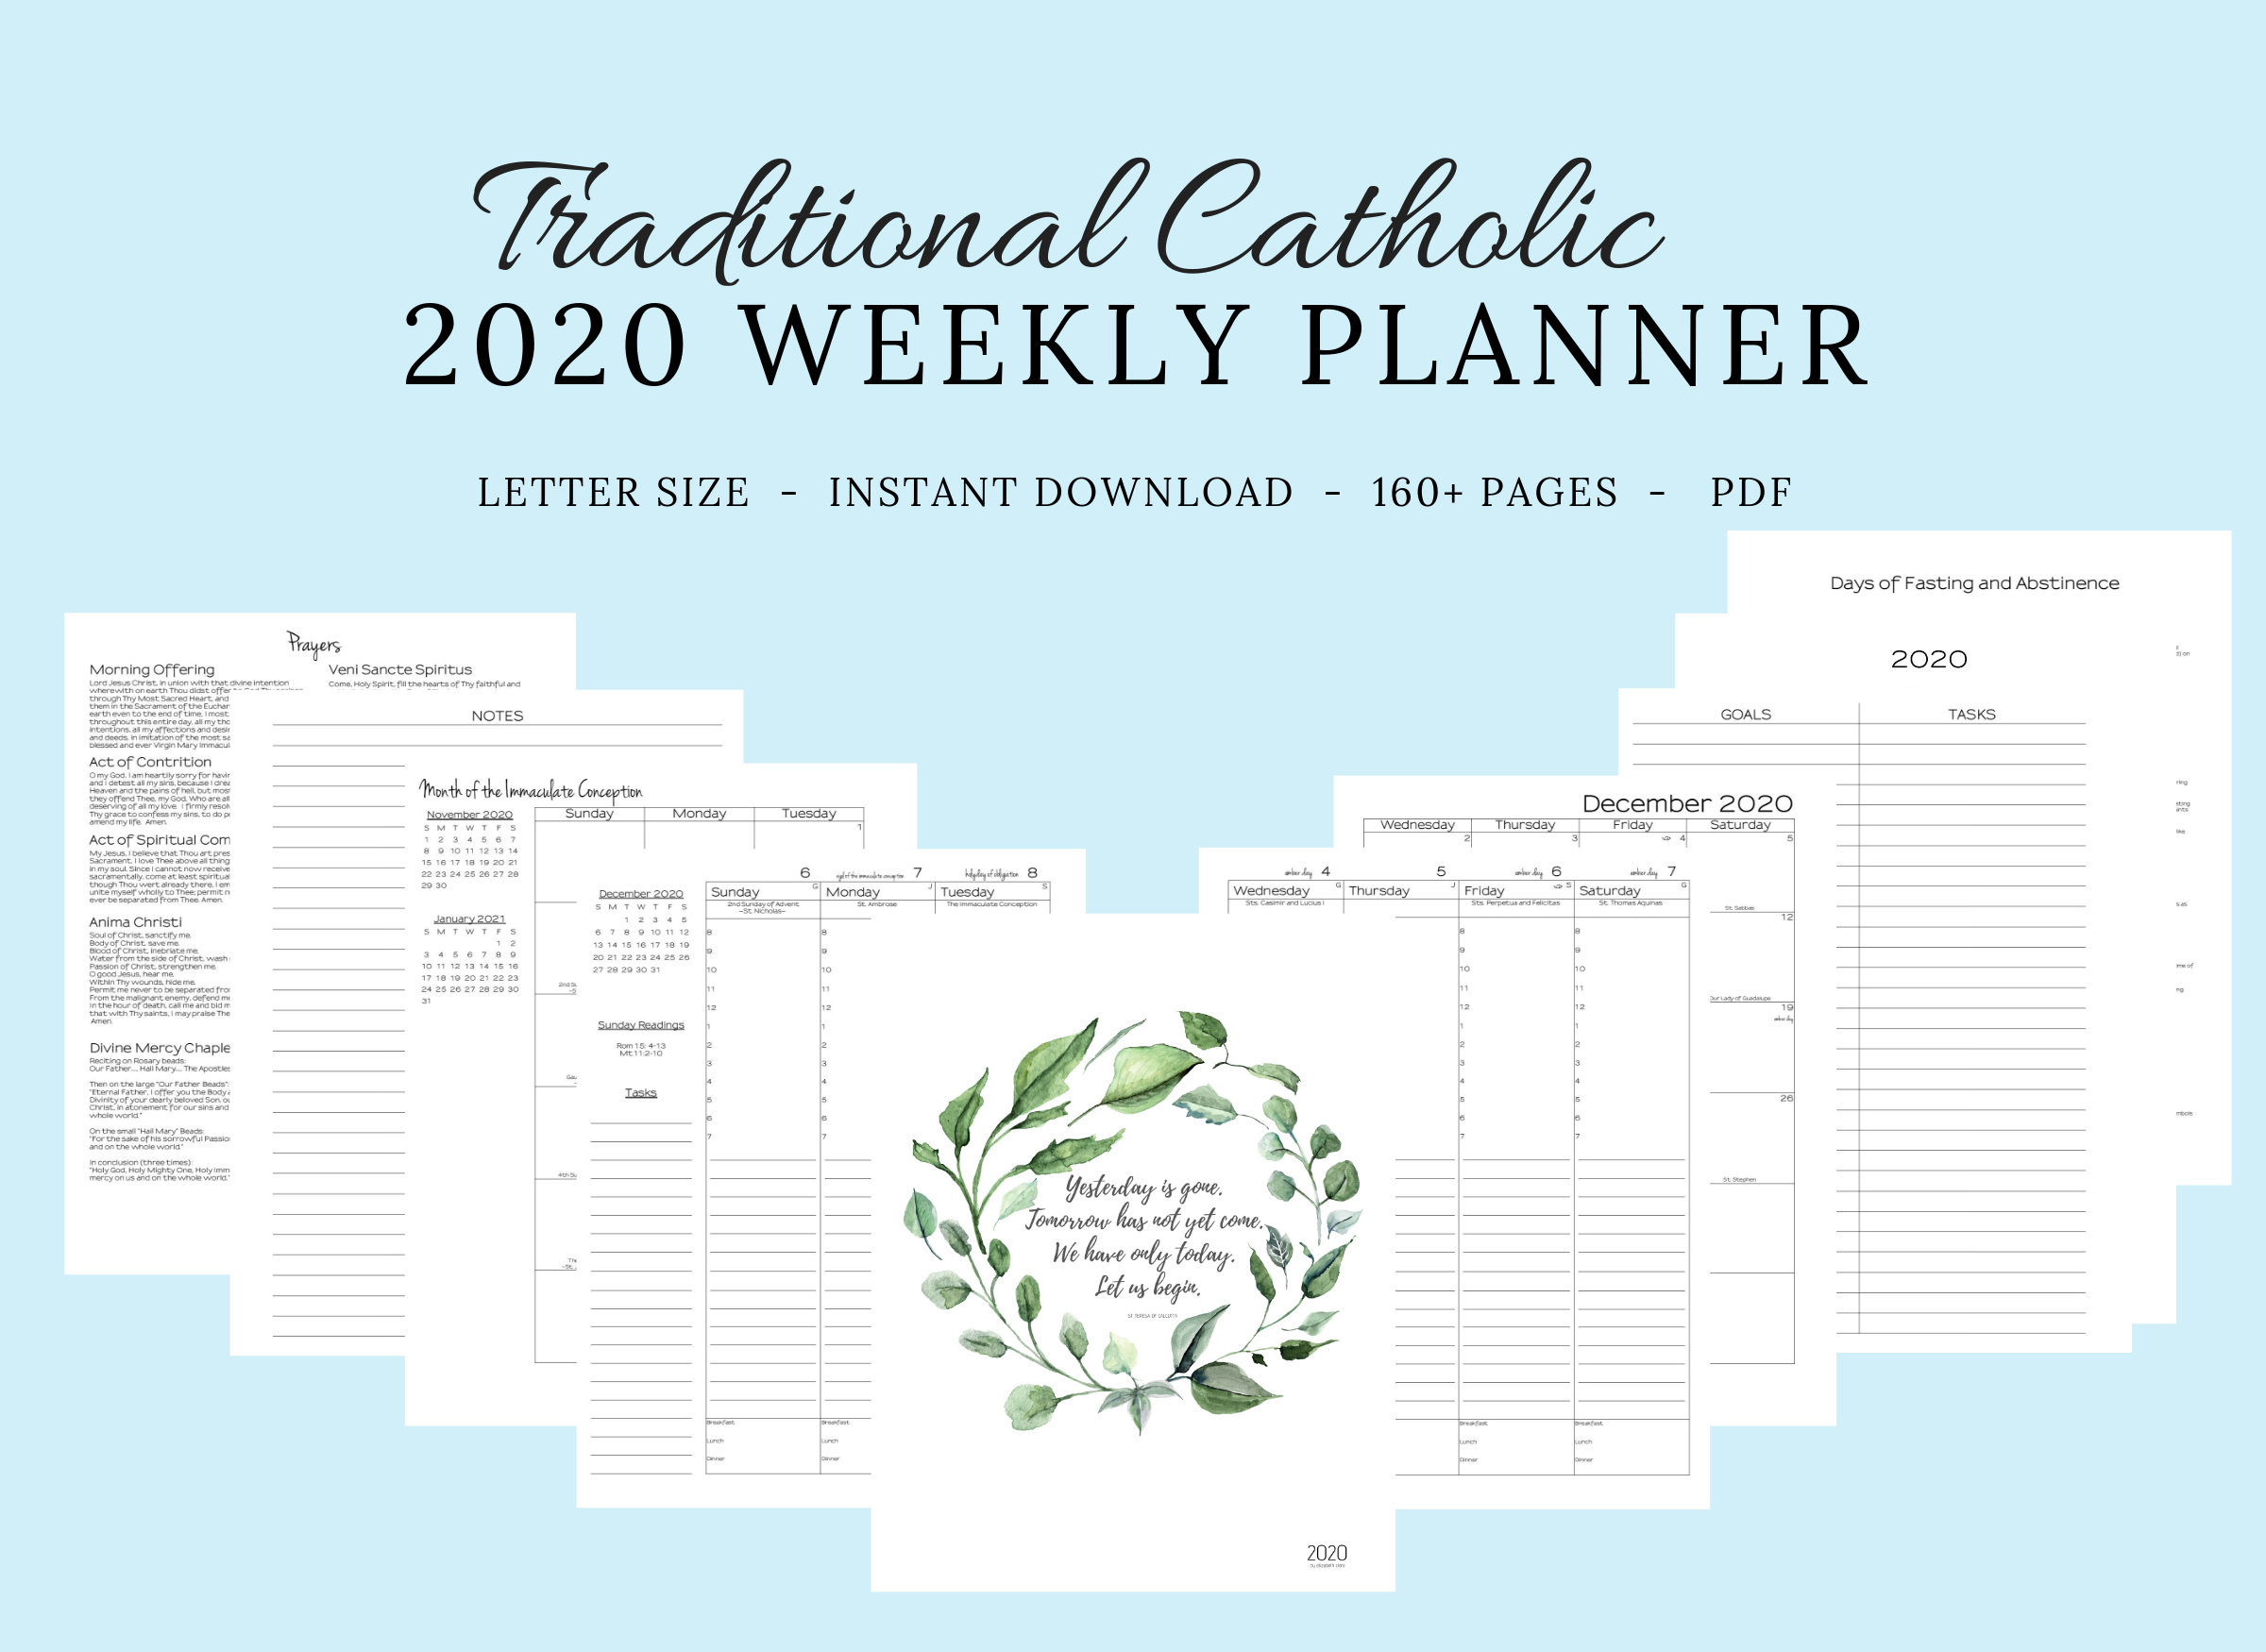 2020 Traditional Latin Catholic Planner Weekly Printable: | Etsy with regard to Free Catholic Liturgical Calendar For 2020